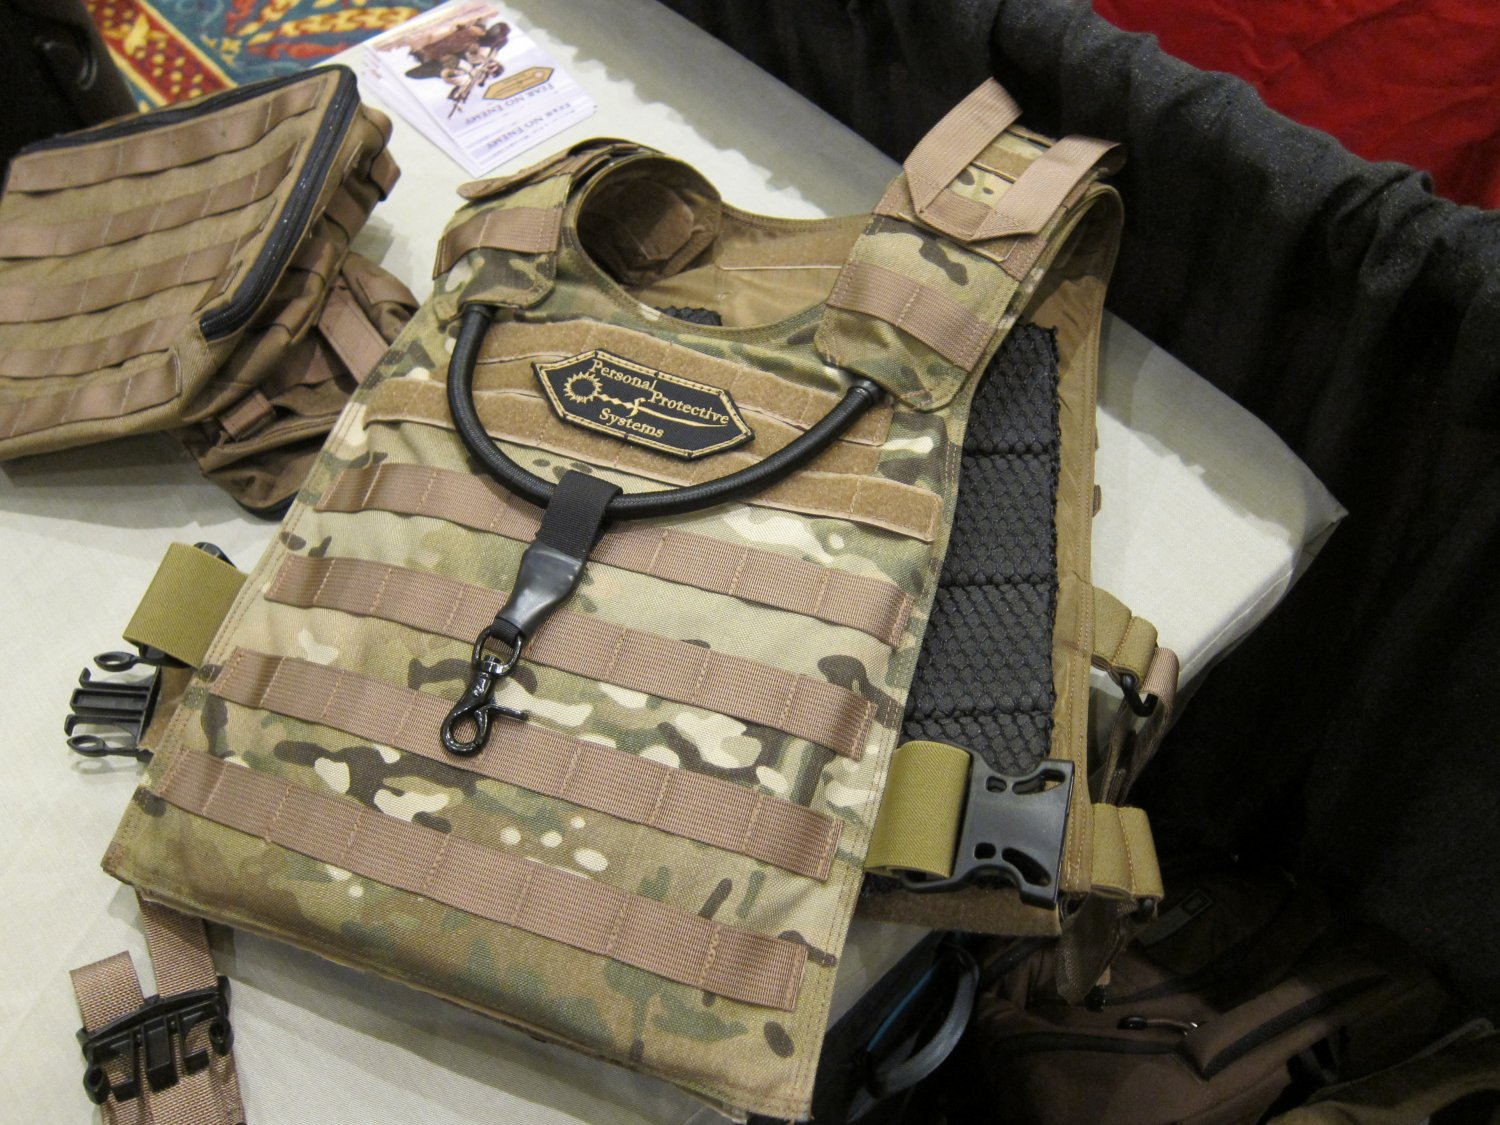 P2 Systems P2Sys Centurion Armour Hastati I Plate Carrier with Integra Sling at SHOT Show 2011 2 <!  :en  >Hardpoint Equipment Tactical Armor Carriers (formerly Personal Protective Systems, or P2 Systems): Best Tactical Body Armor Plate Carriers on the Planet? DR Looks at the Latest Hard Point Hard Armor Plate Carriers, Battle Belt, MOLLE Backpack System, and Passive Ventilation Channels/Removable Padding System at SHOT Show 2011 (Photos and Video!) <!  :  >